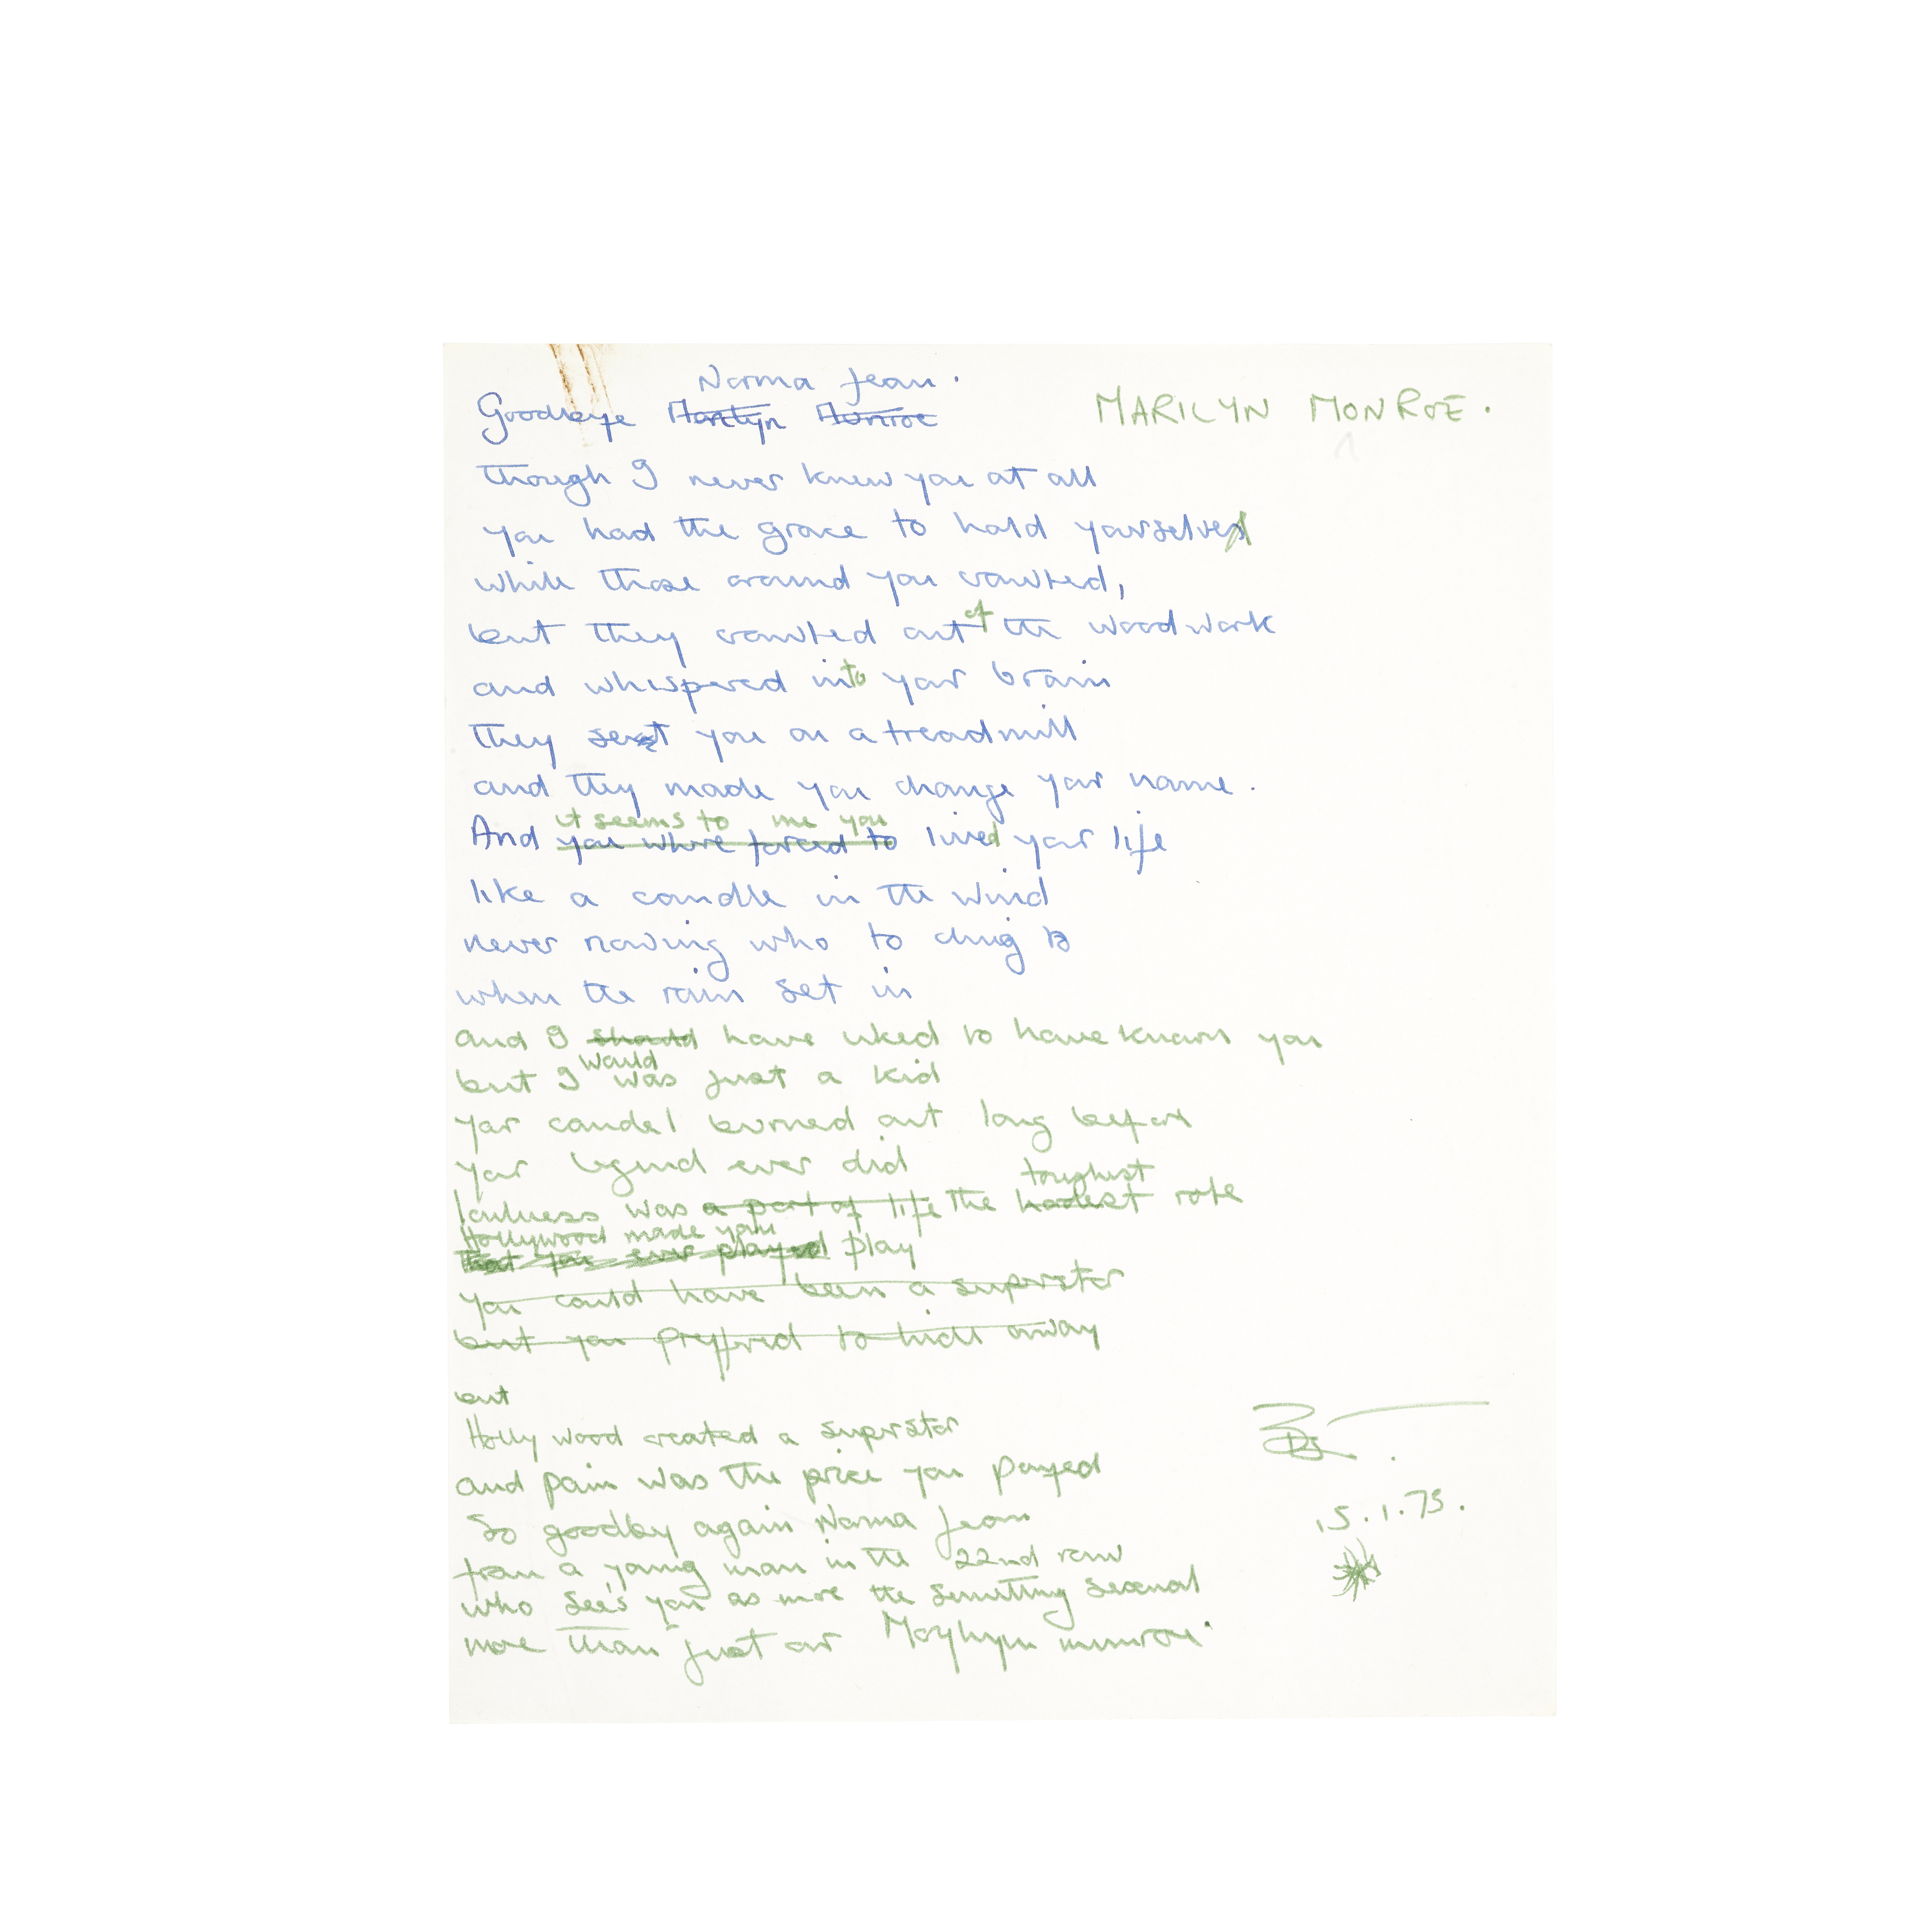 Lot 52 - Original handwritten lyrics for the Elton John song 'Candle in the Wind'